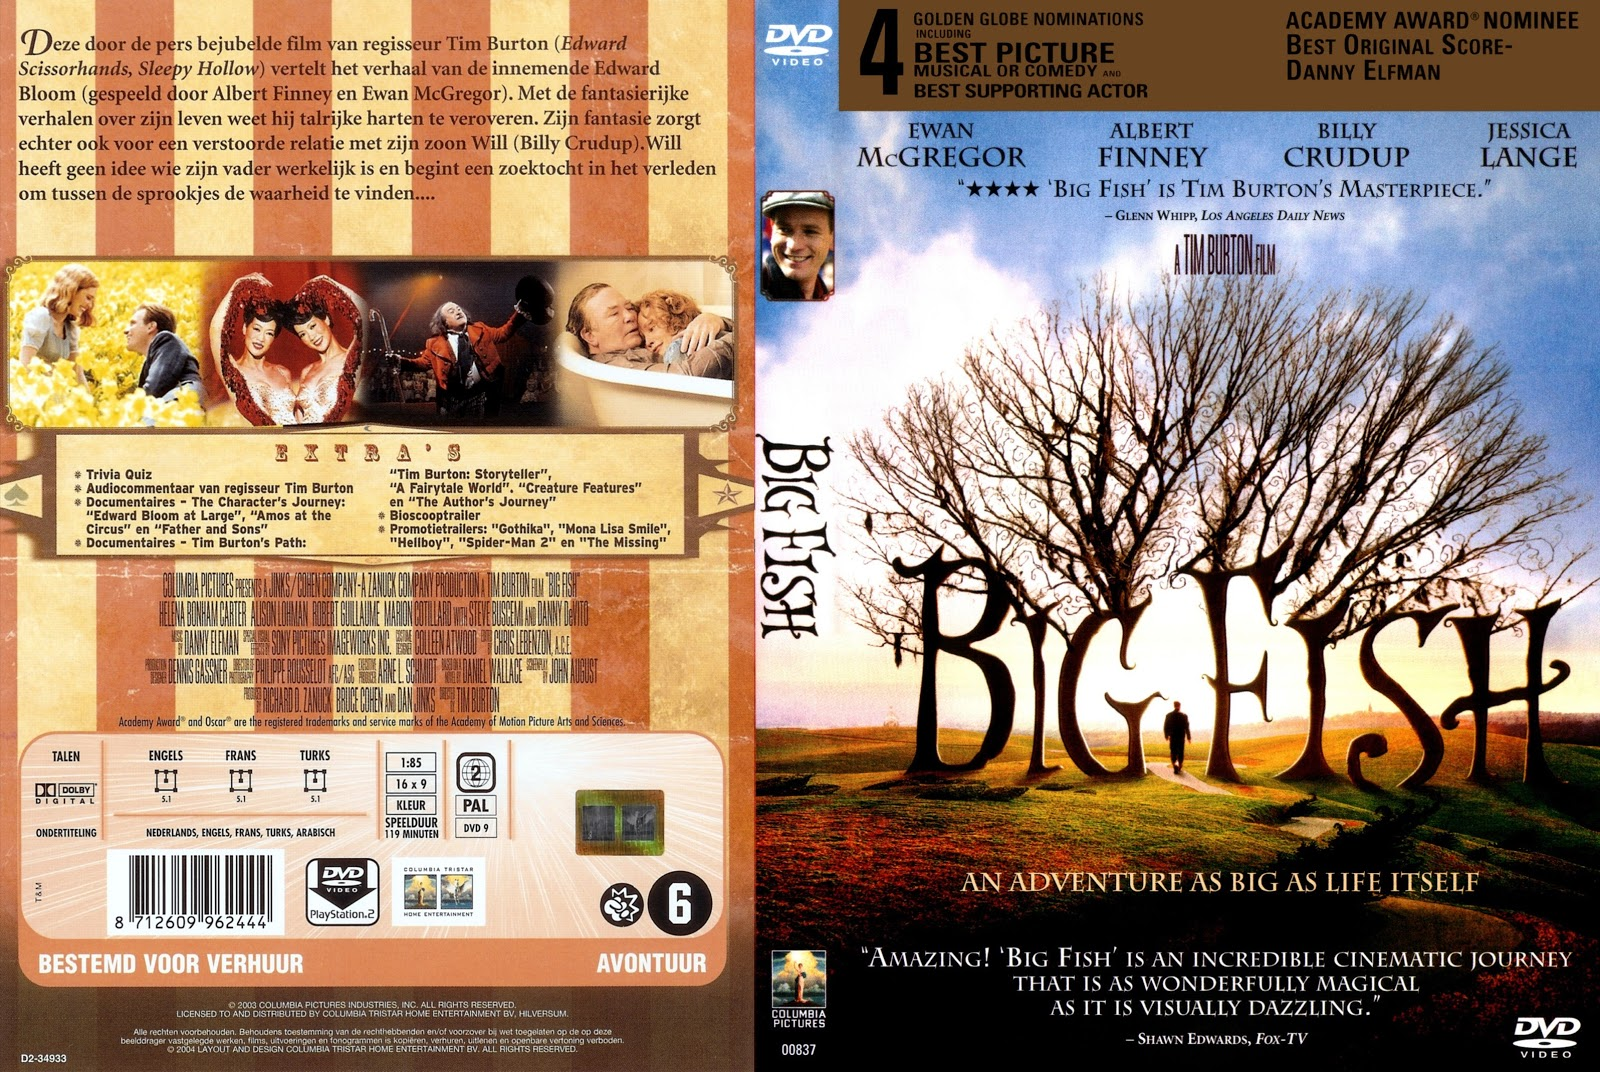 Big Fish Dvd Front back Cover